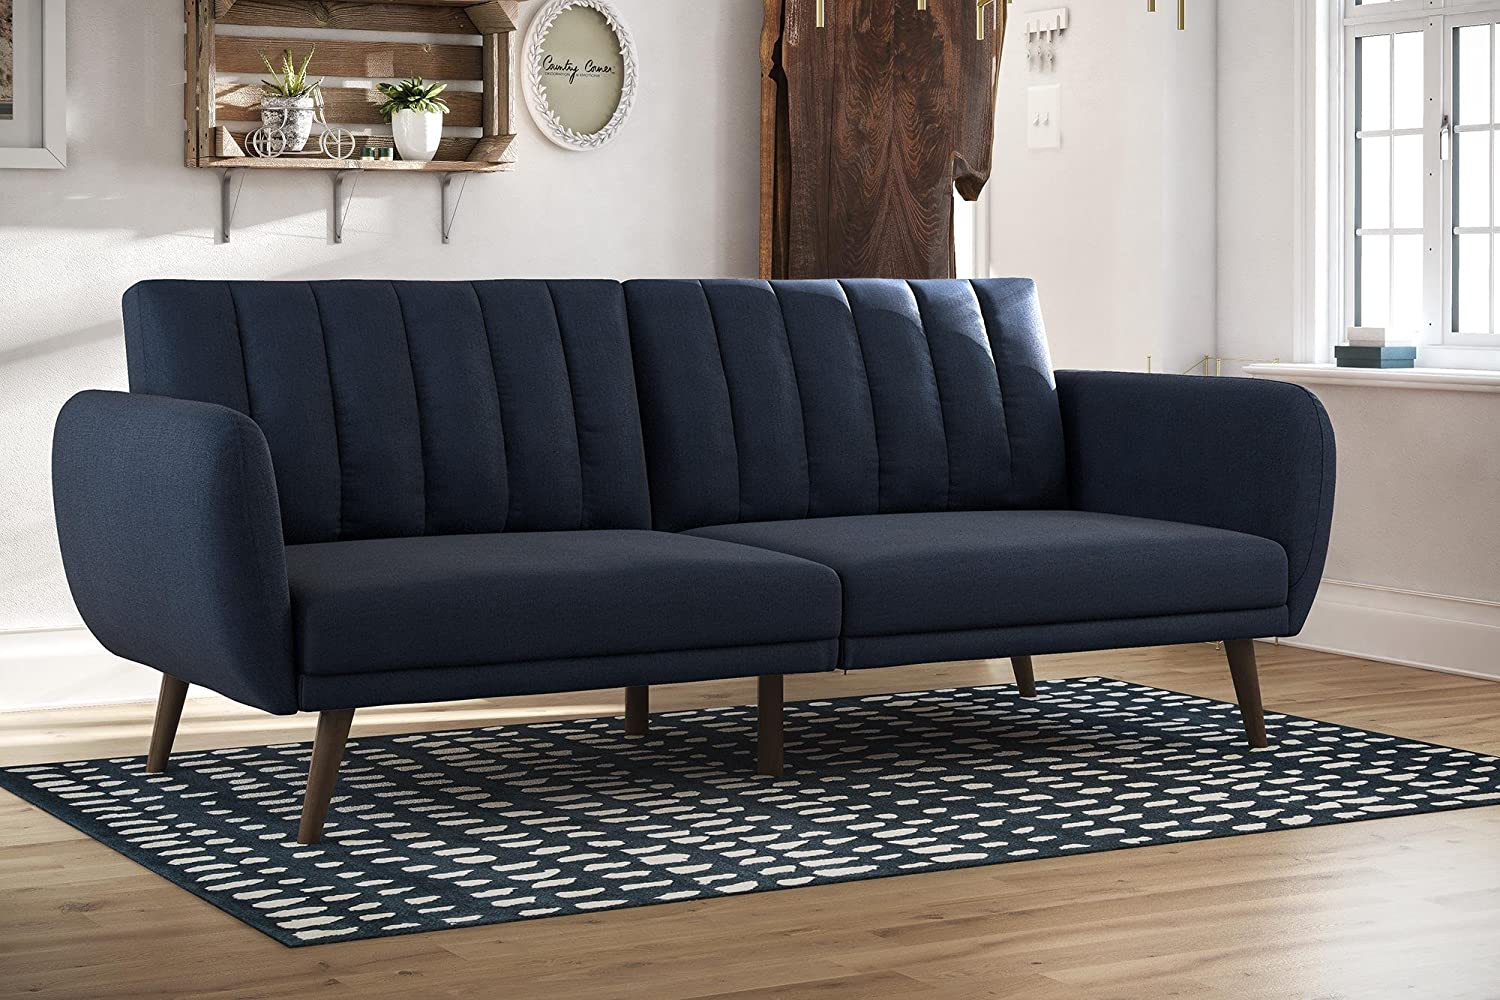 These Are The Best Sleeper Sofas For Any Space Updated Spy